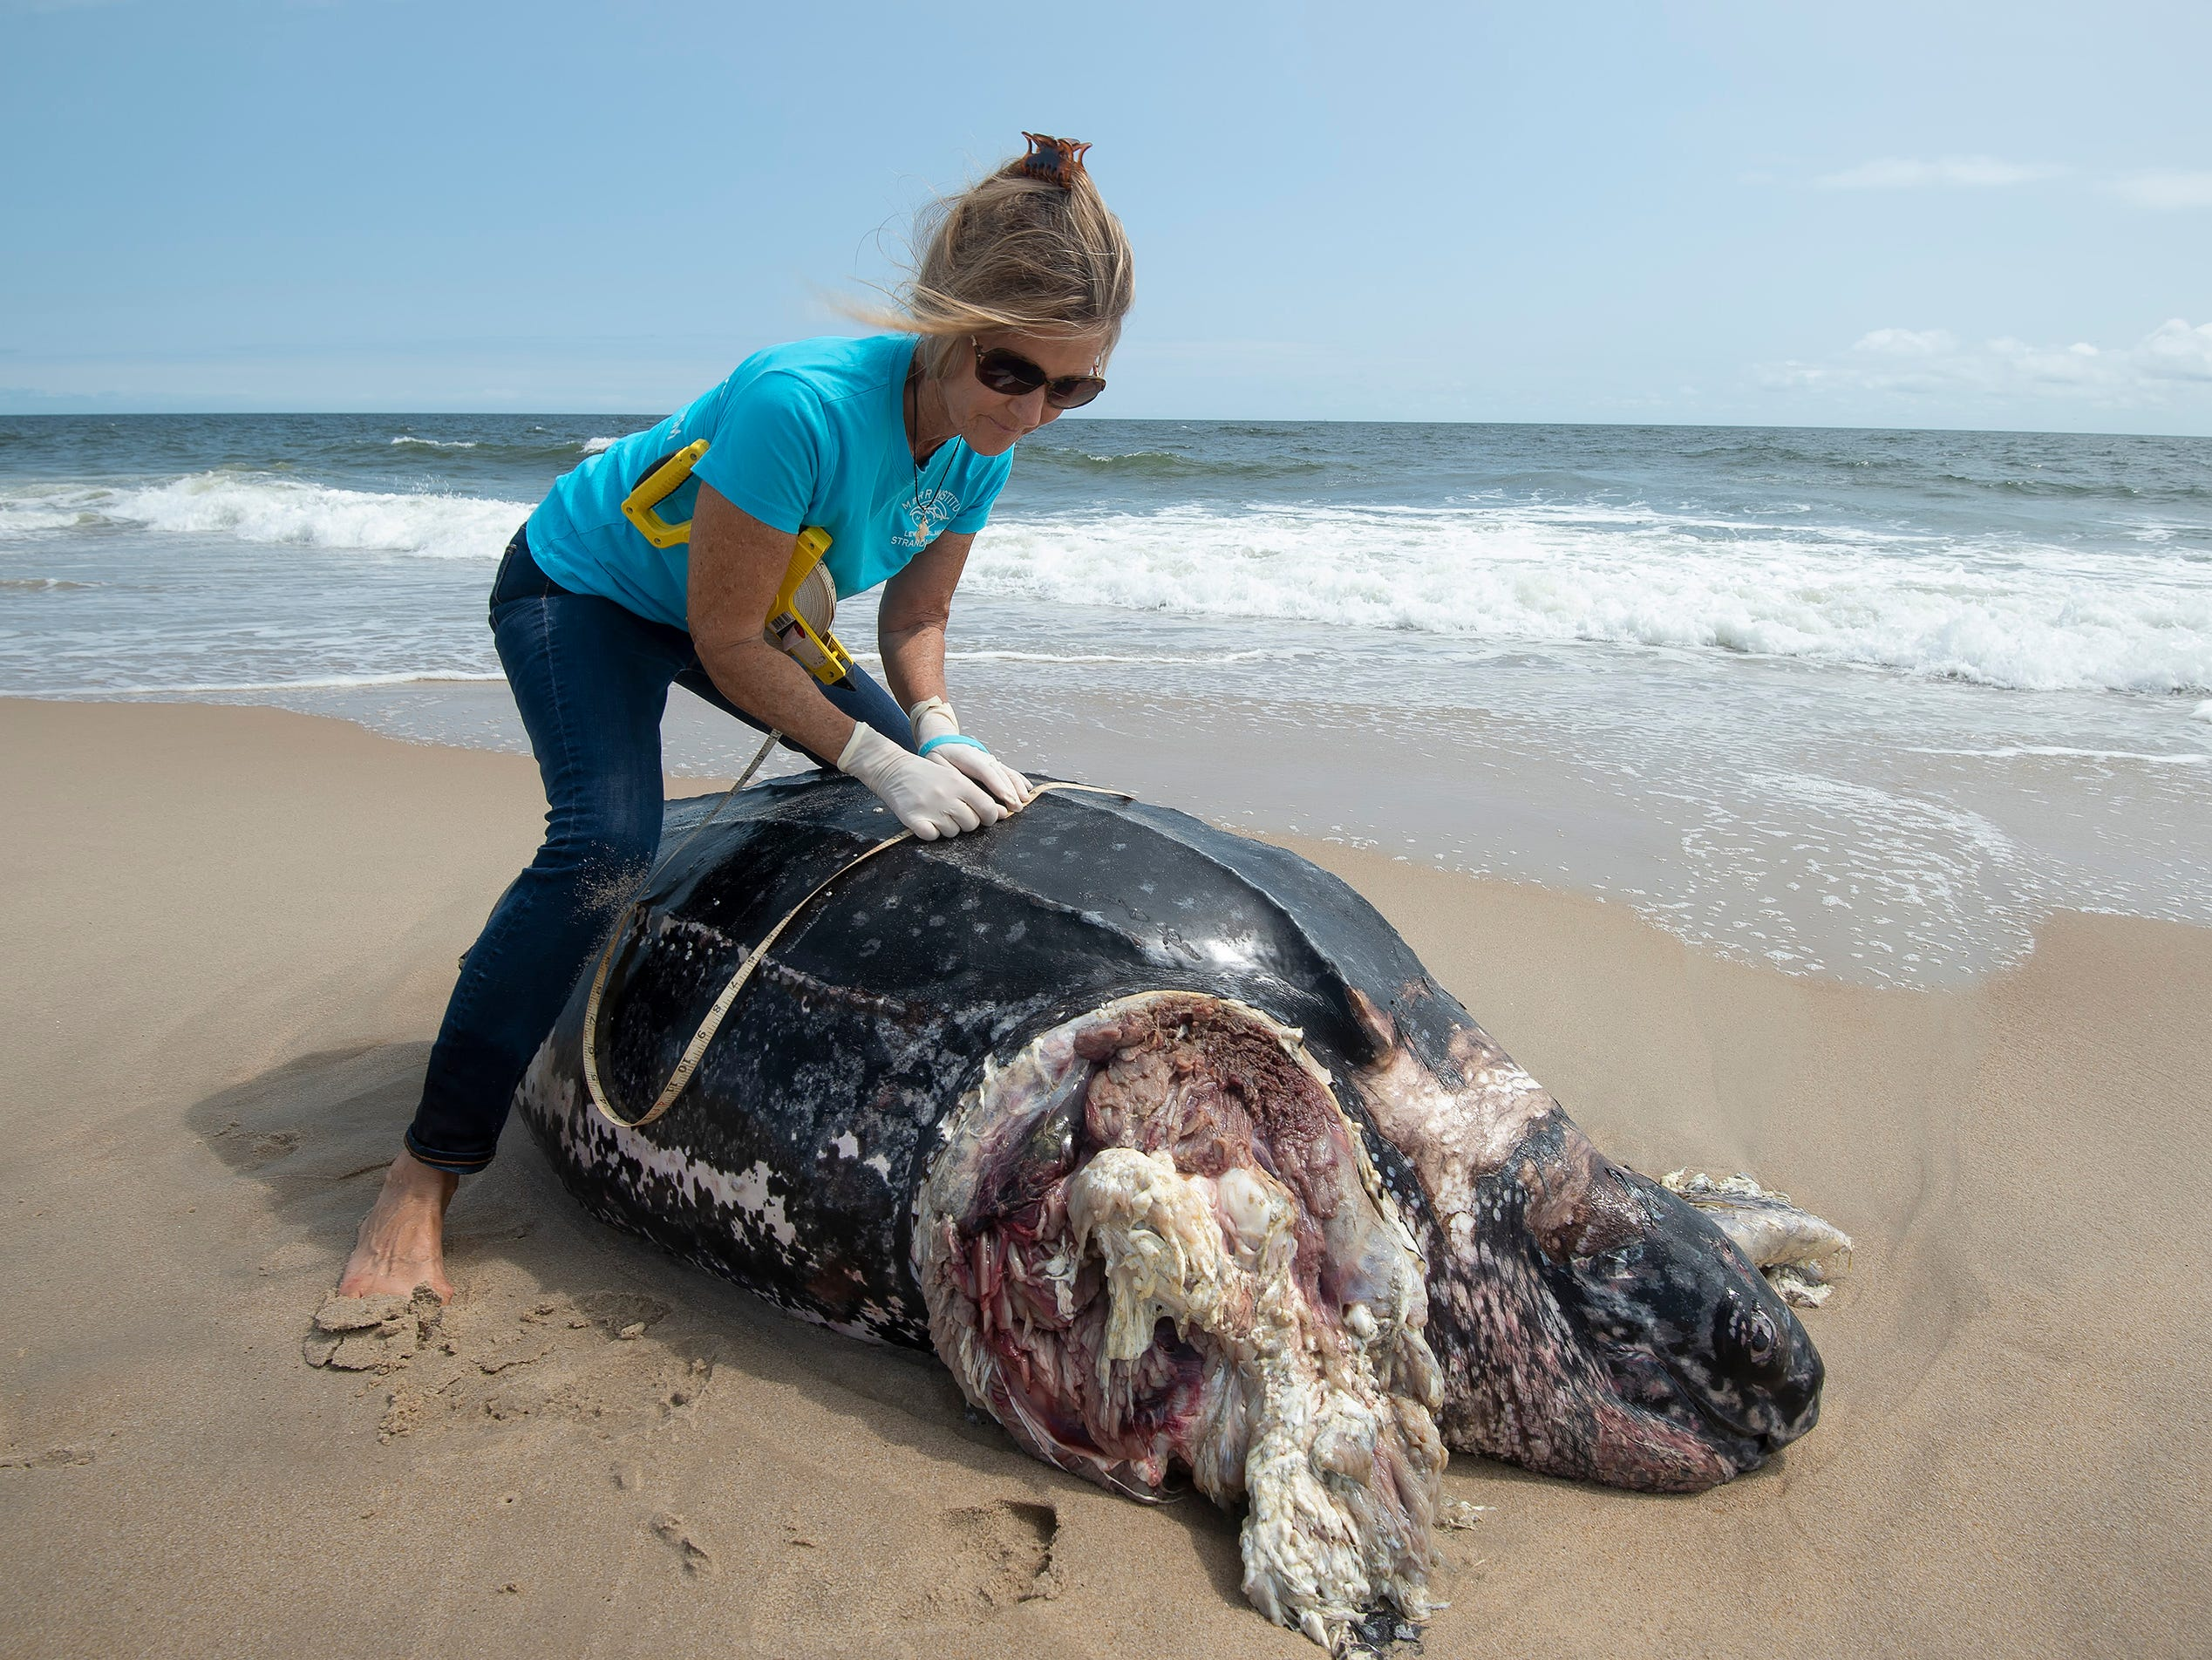 Suzanne Thurman, executive director of the MERR Institute, measures the leatherback sea turtle that washed up along the Delaware Seashore State Park Beach, Tower Road south of Dewey Beach.